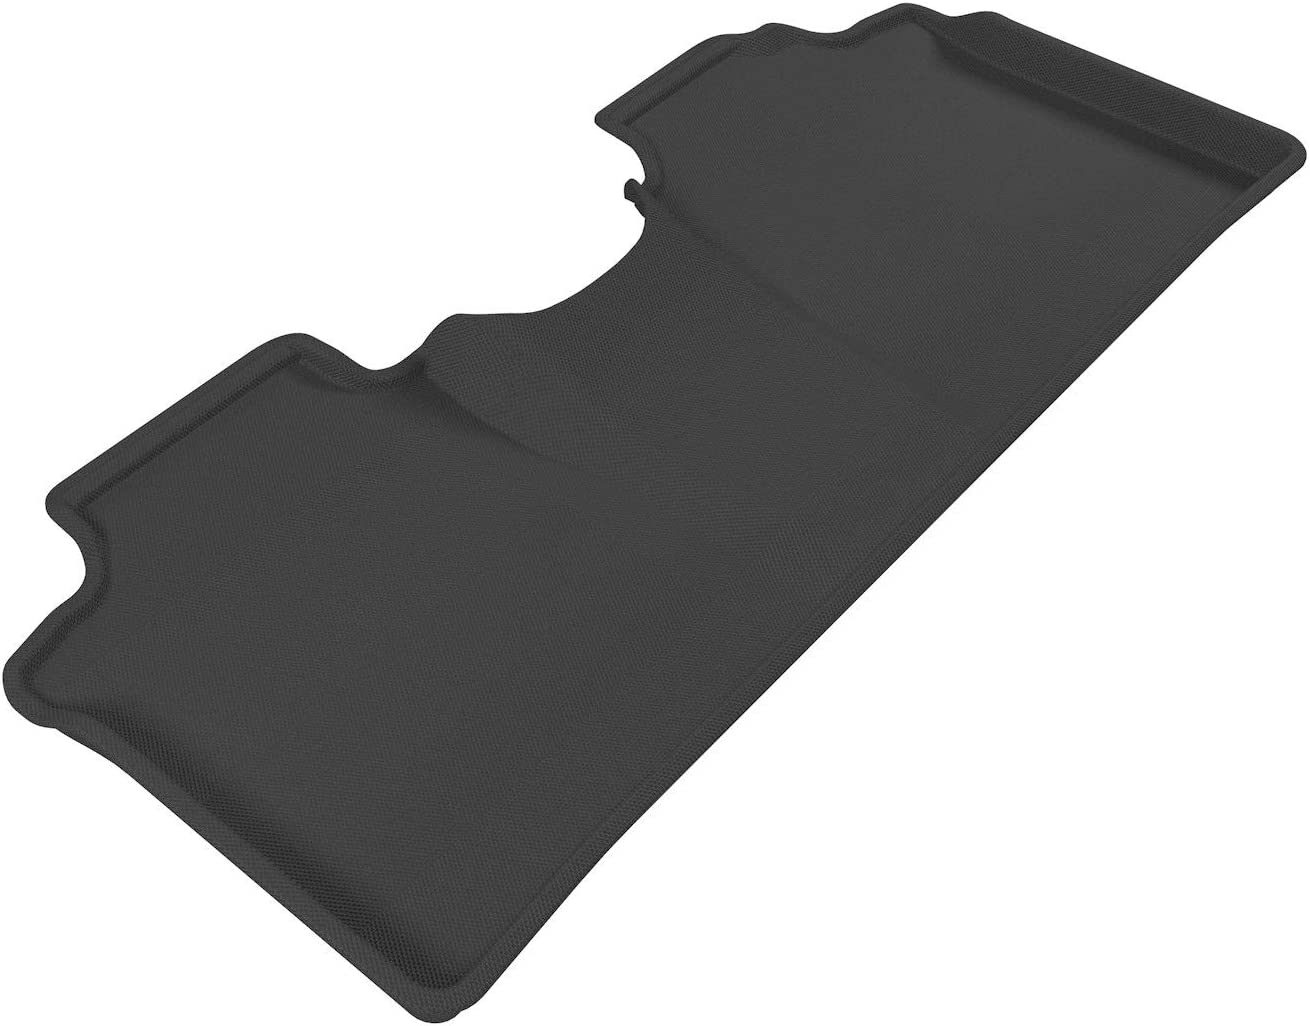 3D MAXpider Second Row Custom Fit All-Weather Floor Mat for Select Dodge RAM 1500 Models Kagu Rubber Black